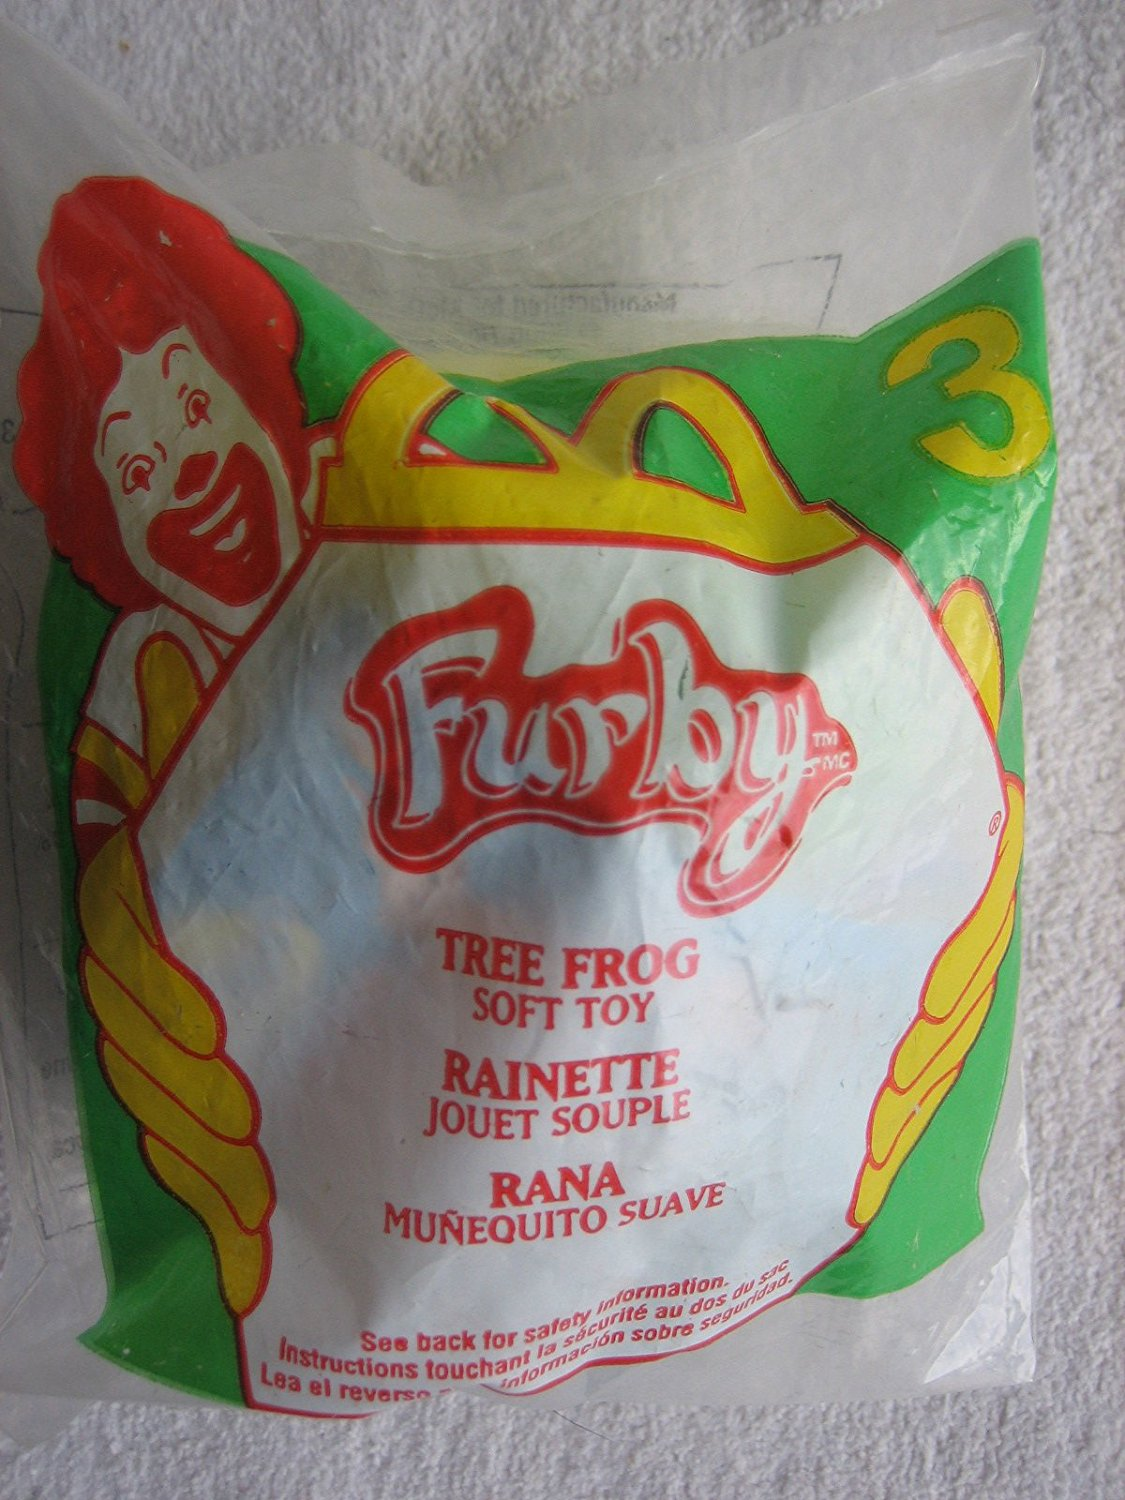 Furby #3 Tree Frog Plush Toy 2000, By McDonalds Ship from US by